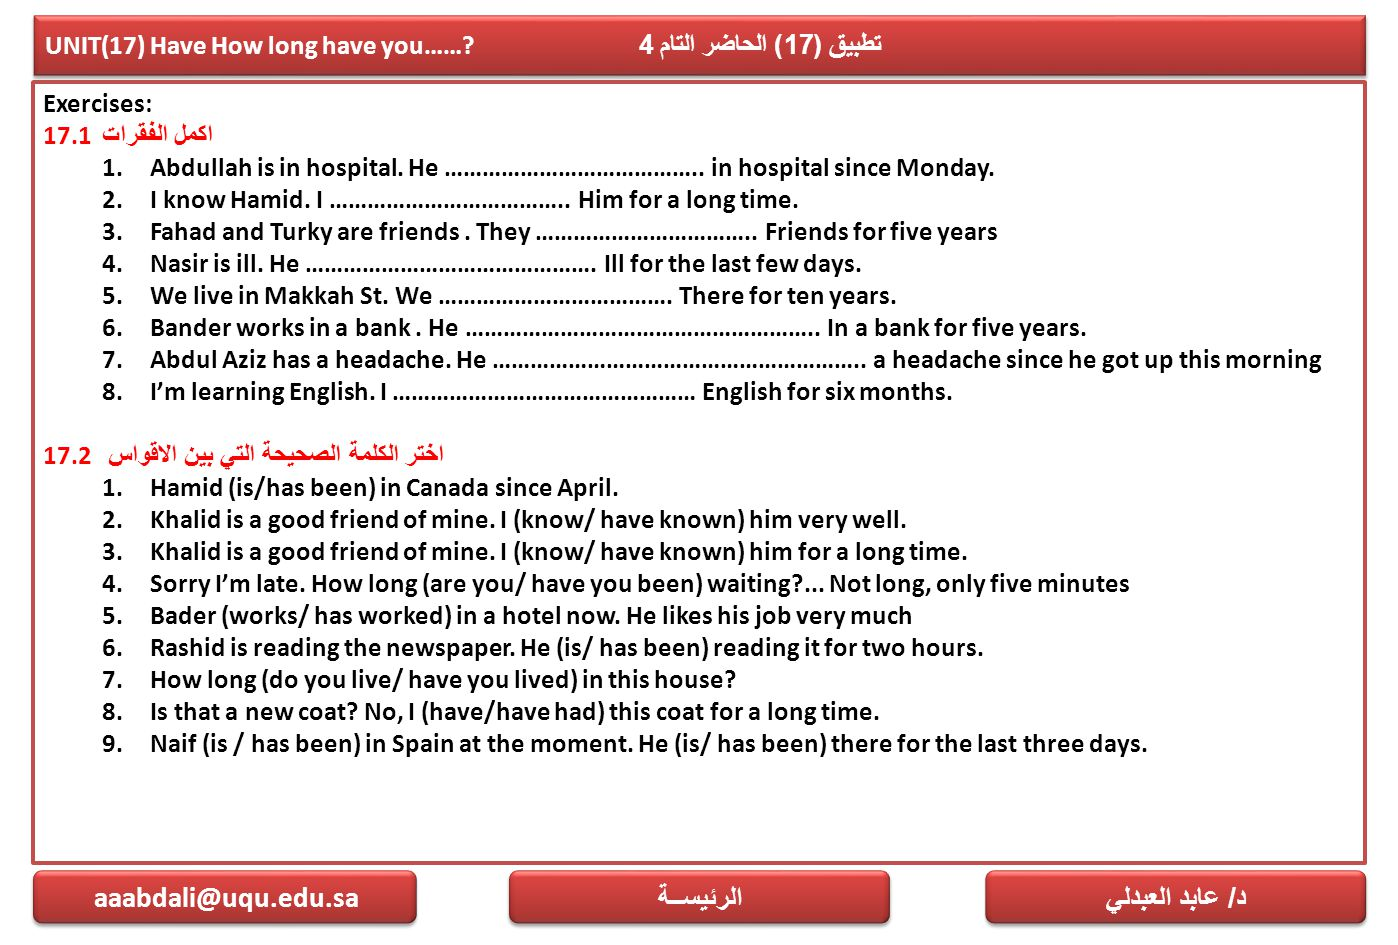 UNIT(17) Have How long have you…… تطبيق (17) الحاضر التام 4